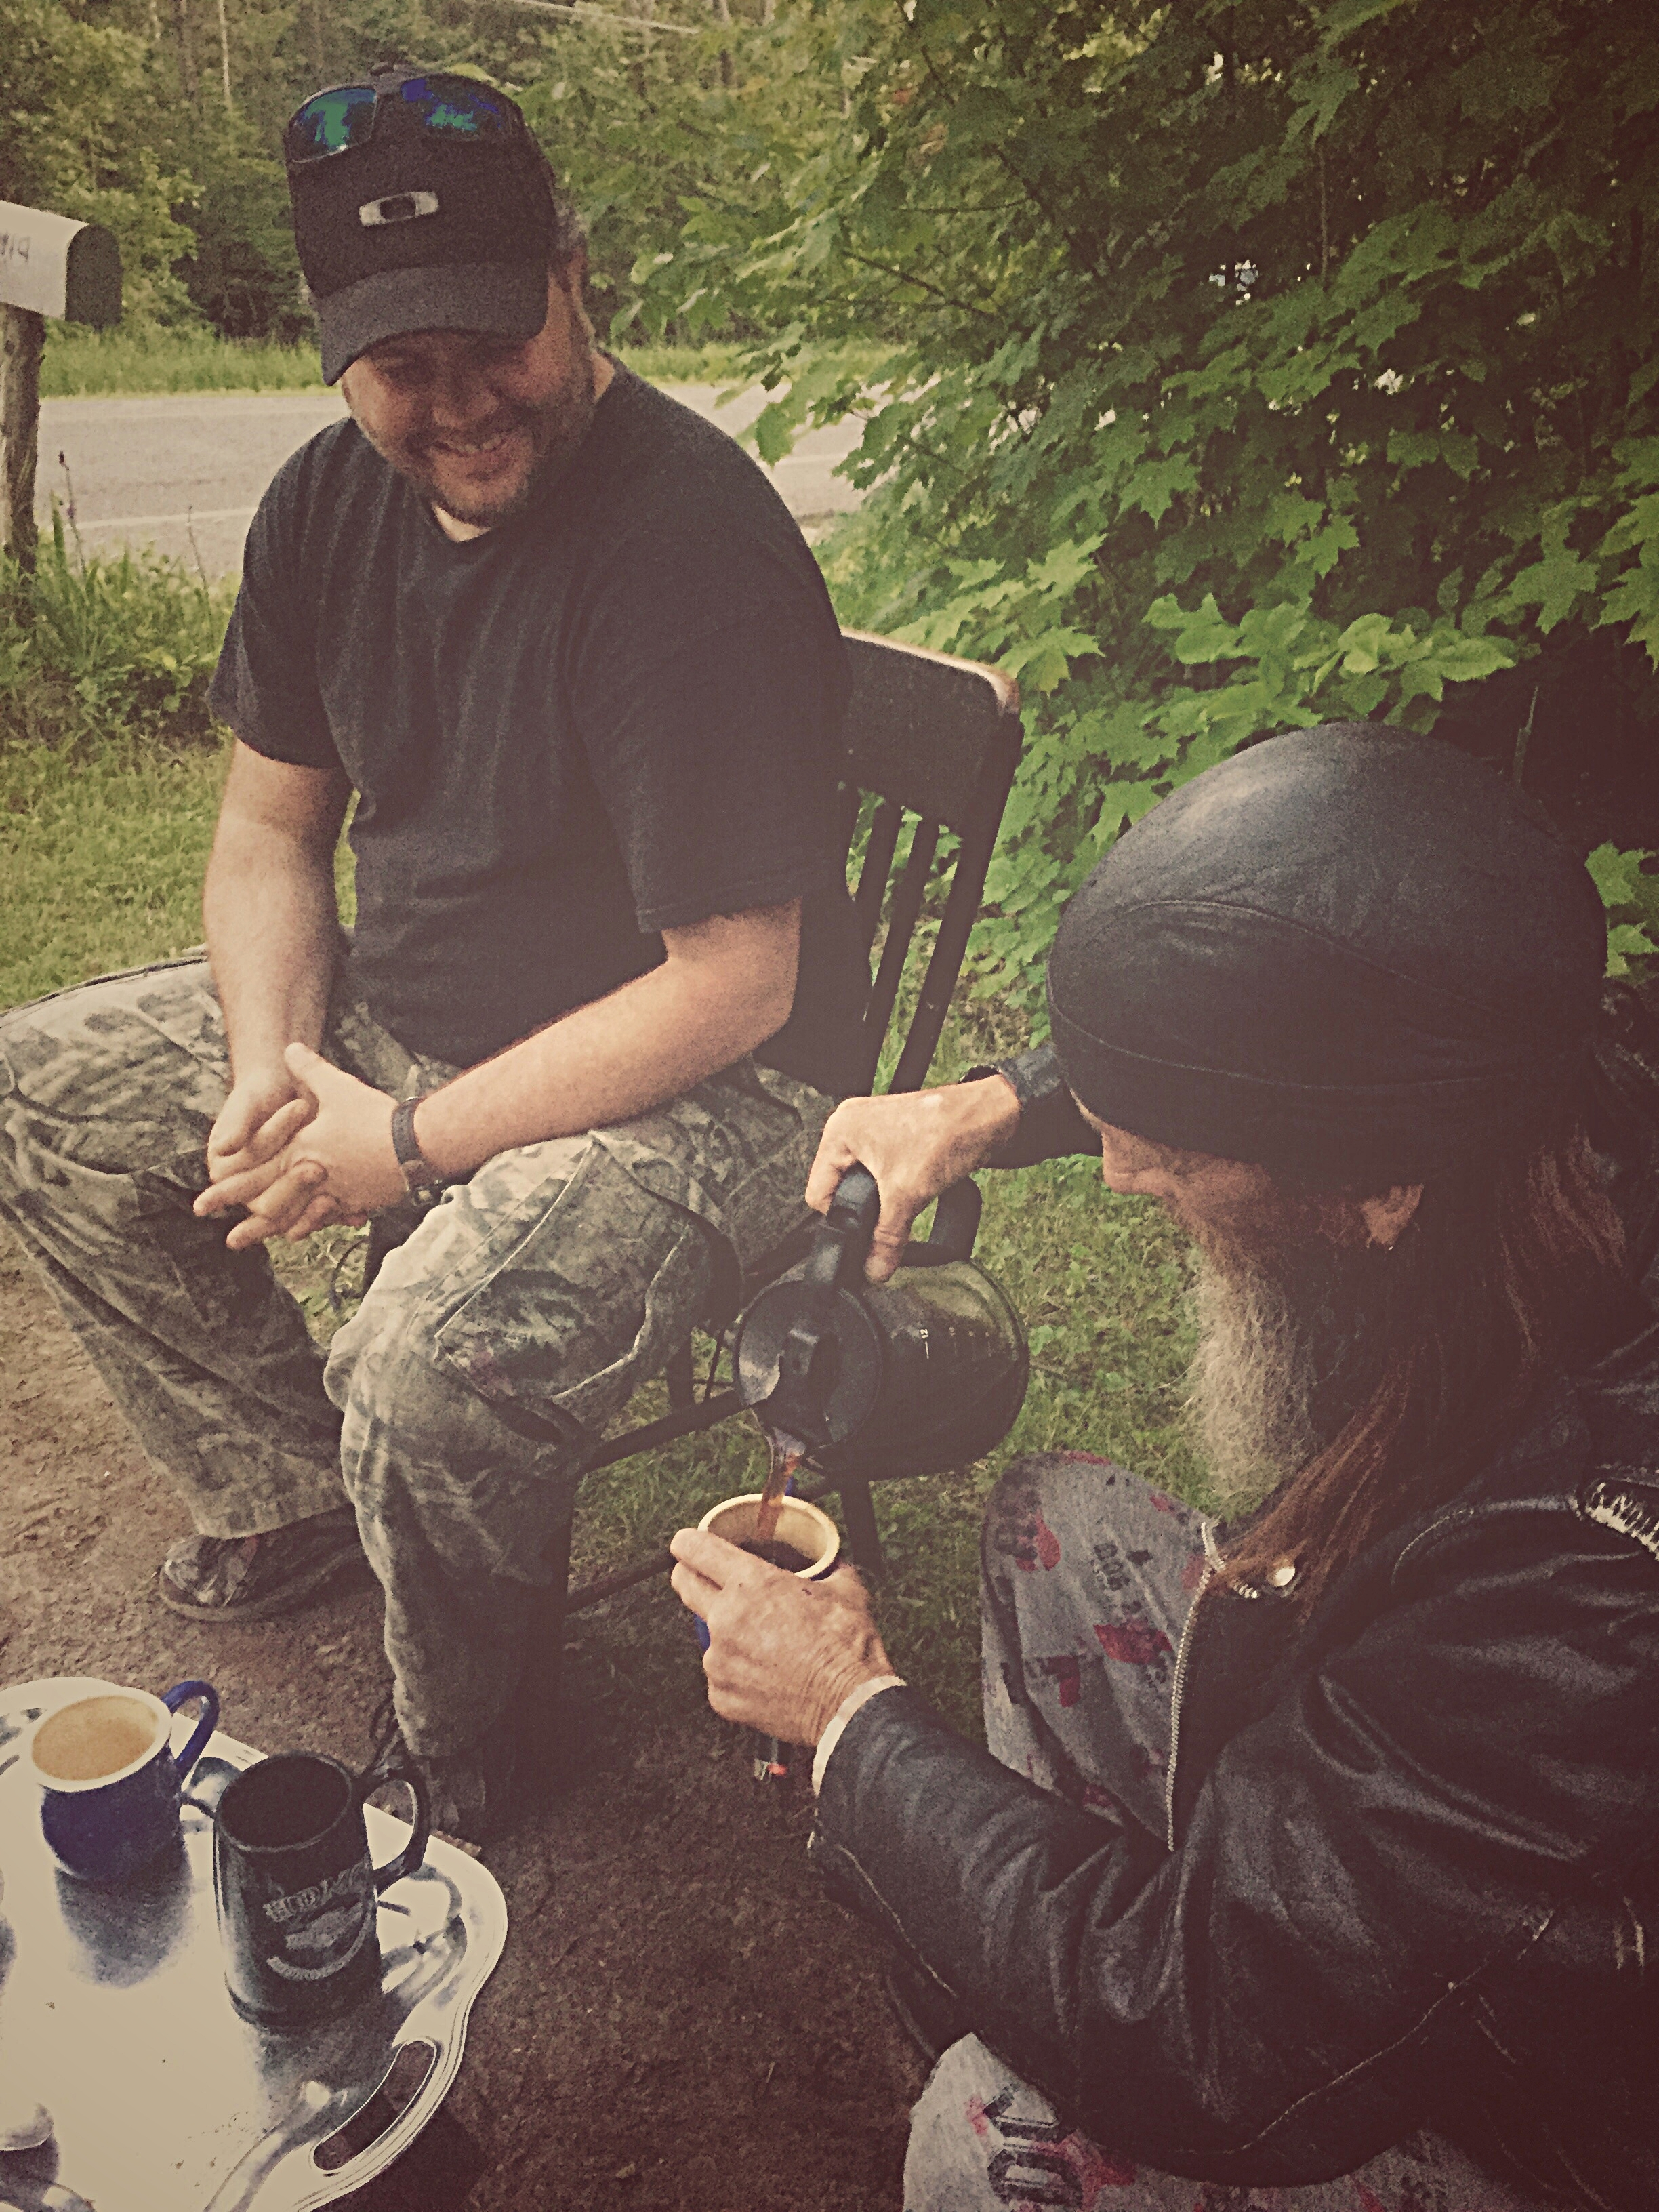 """Michael McCaffrey joins """"Slim"""" for a cup of coffee on the side of Fayetteville Road in Malone, N.Y. as state troopers descend on the area in search of David Sweat.  (Chelsia Rose Marcius/June 26, 2015)"""